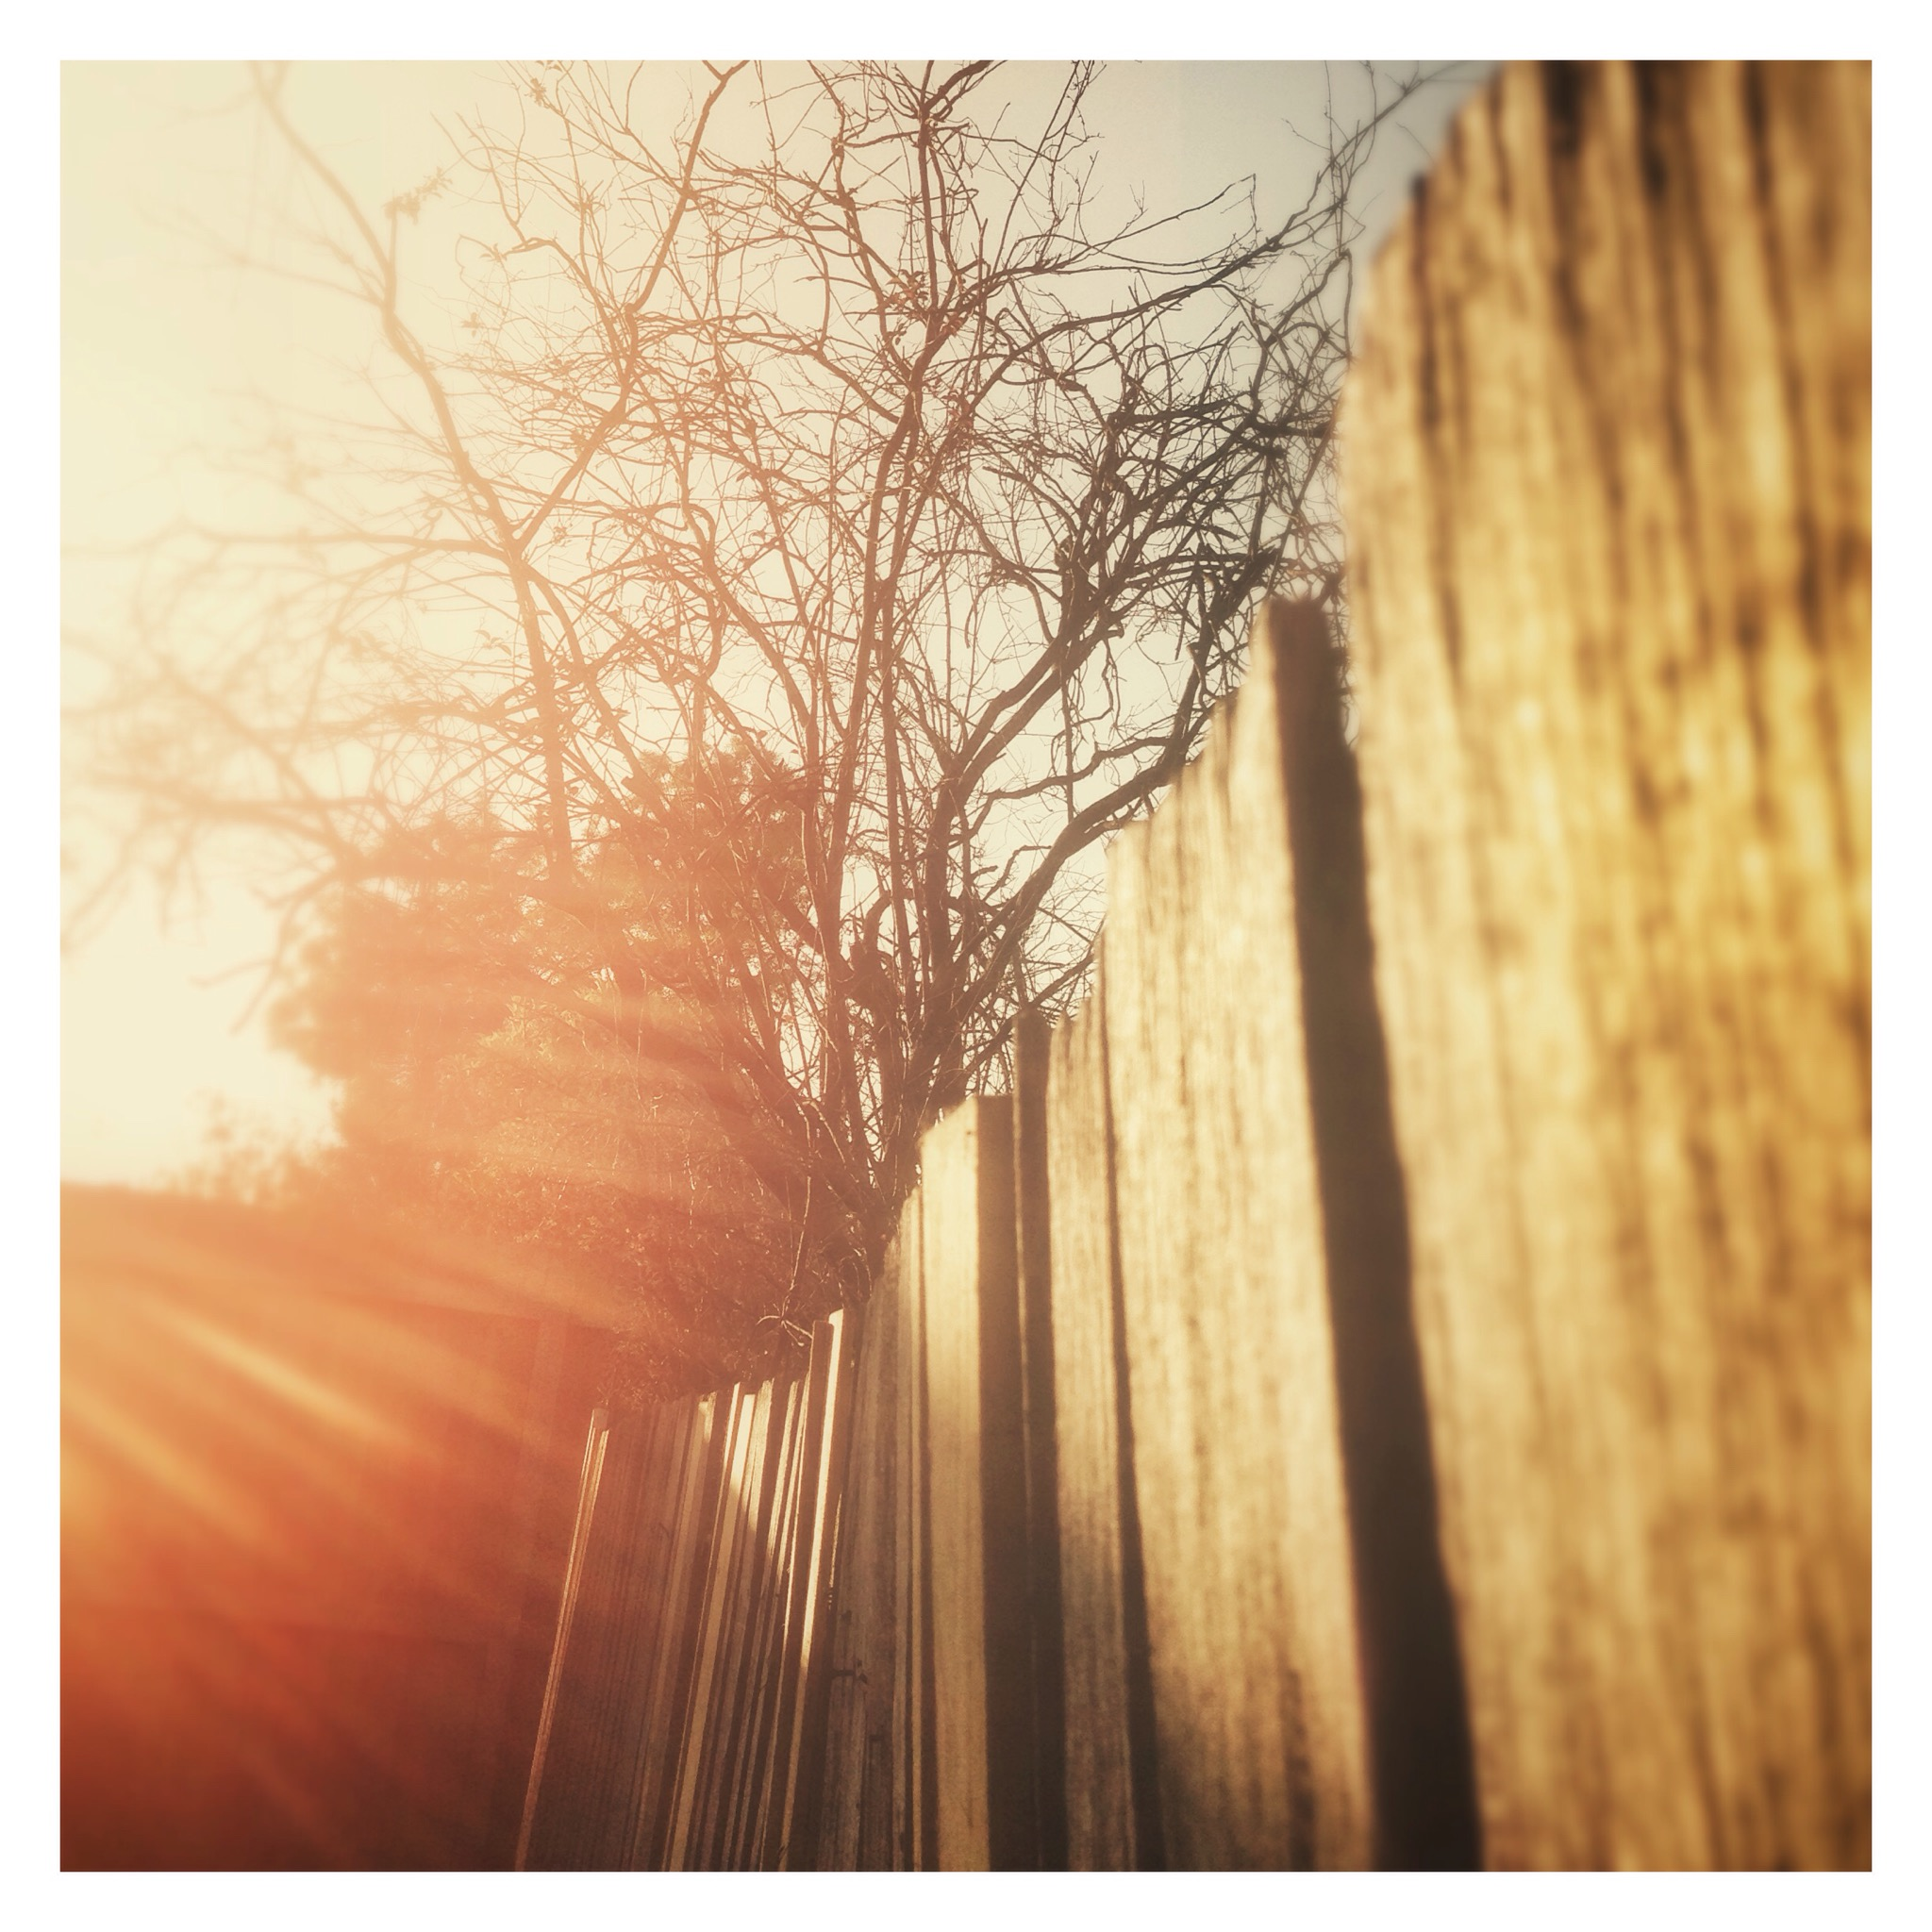 Day 1354. Over the Fence